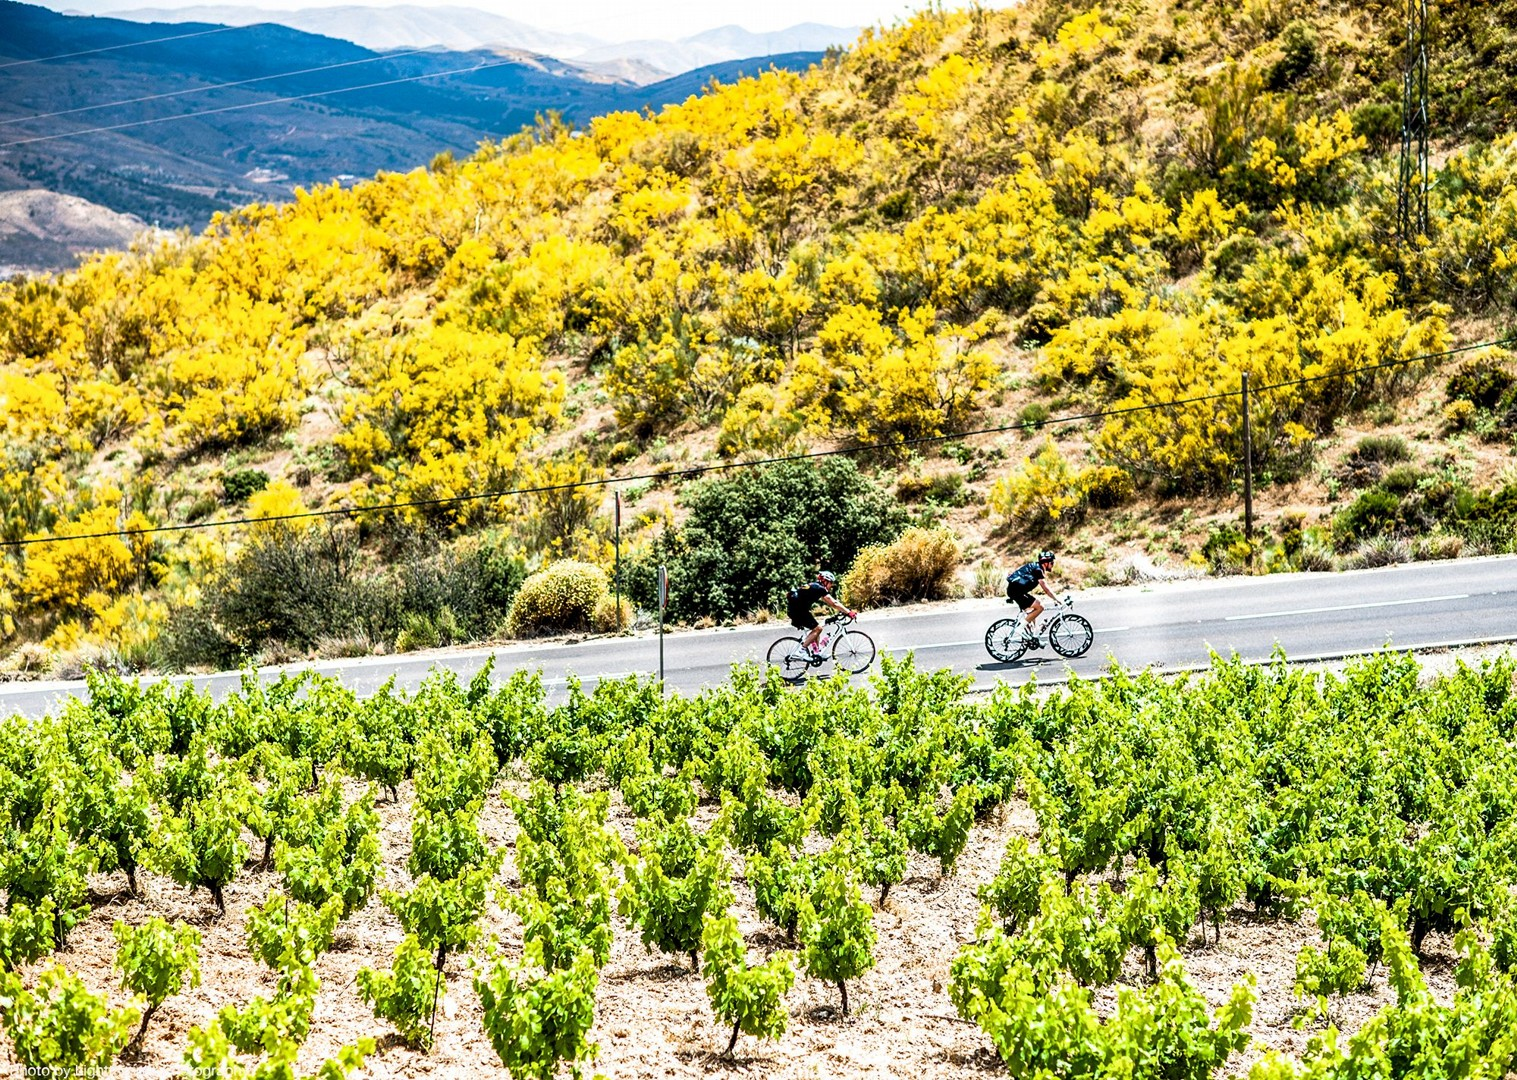 spain-guided-road-cycling-holiday-sierra-nevada-and-granada-trip.jpg - Southern Spain - Sierra Nevada and Granada - Guided Road Cycling Holiday - Road Cycling